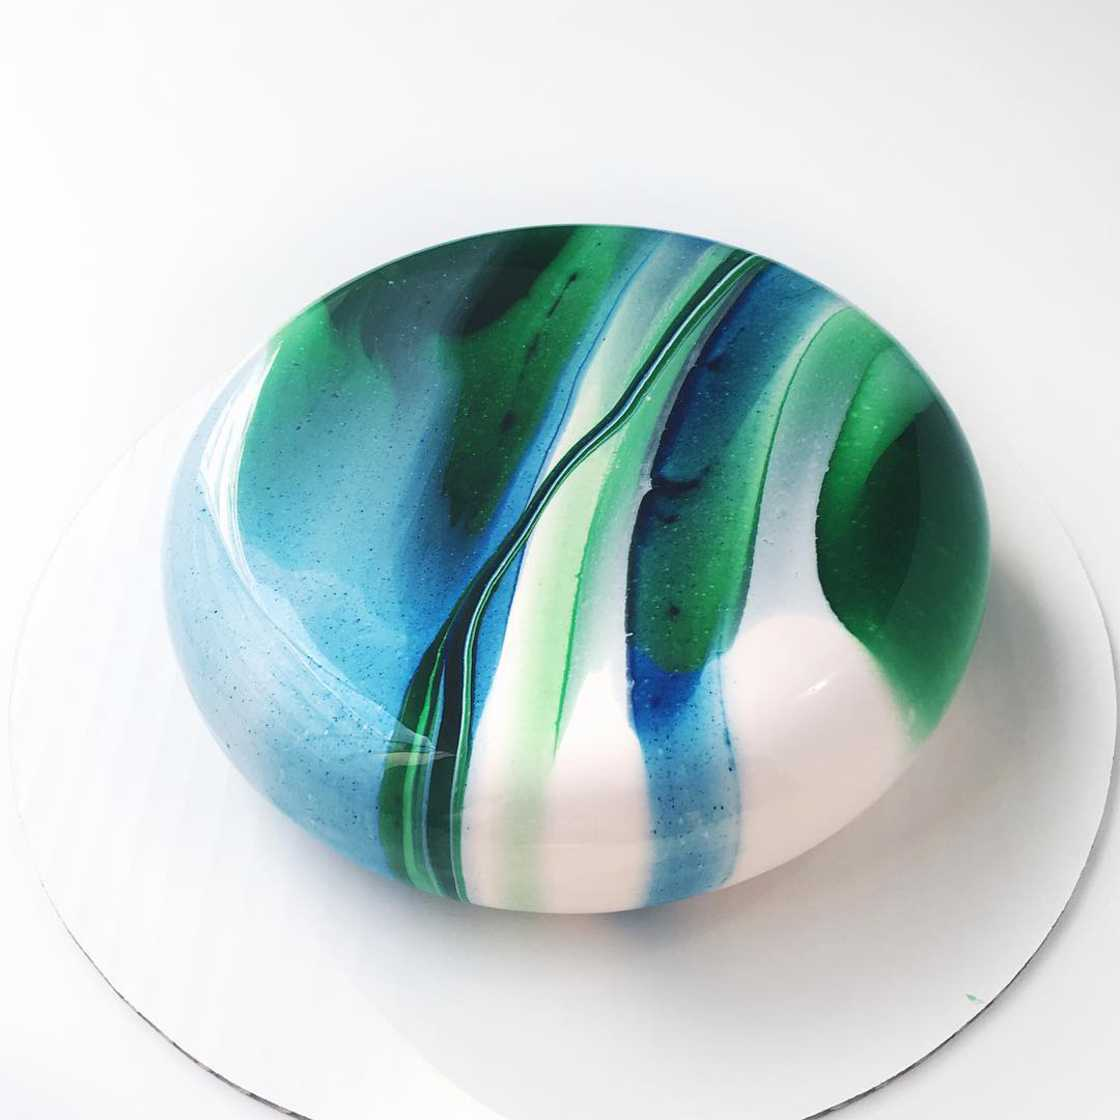 Colorful Cakes - The amazing culinary creations of Ksenia Penkina